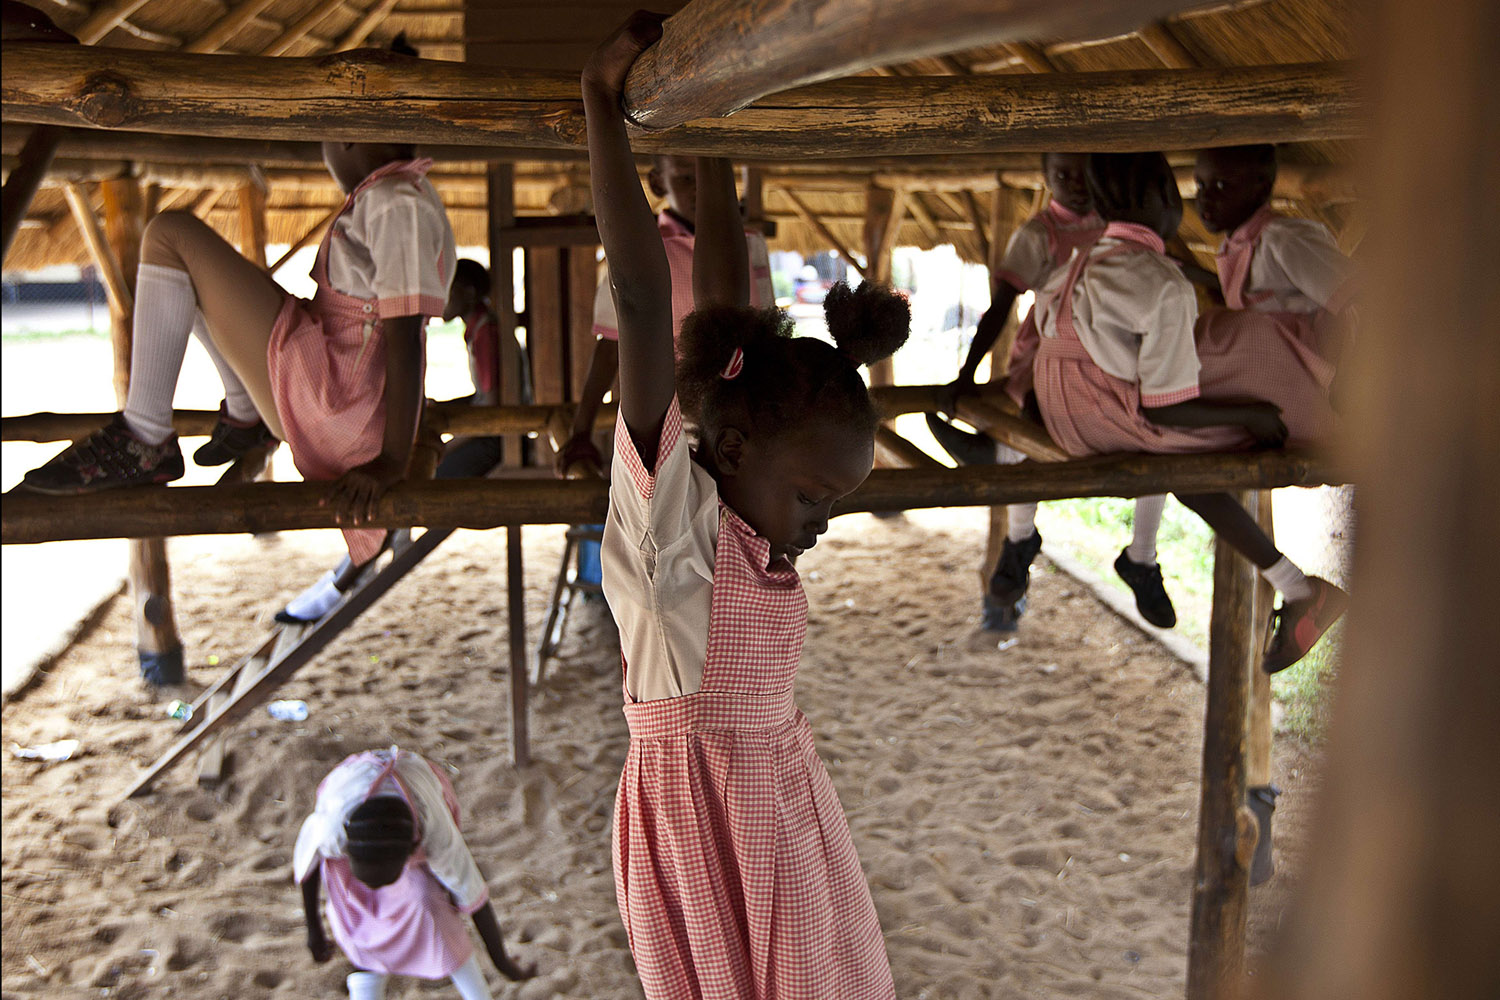 Mar. 25, 2014.                                Pupils at play time in the Ephatha Primary School in Juba. Peace talks between South Sudan's government and rebels resumed in Ethiopia on Tuesday, mediators said, urging both sides to return to a moribund ceasefire agreement.